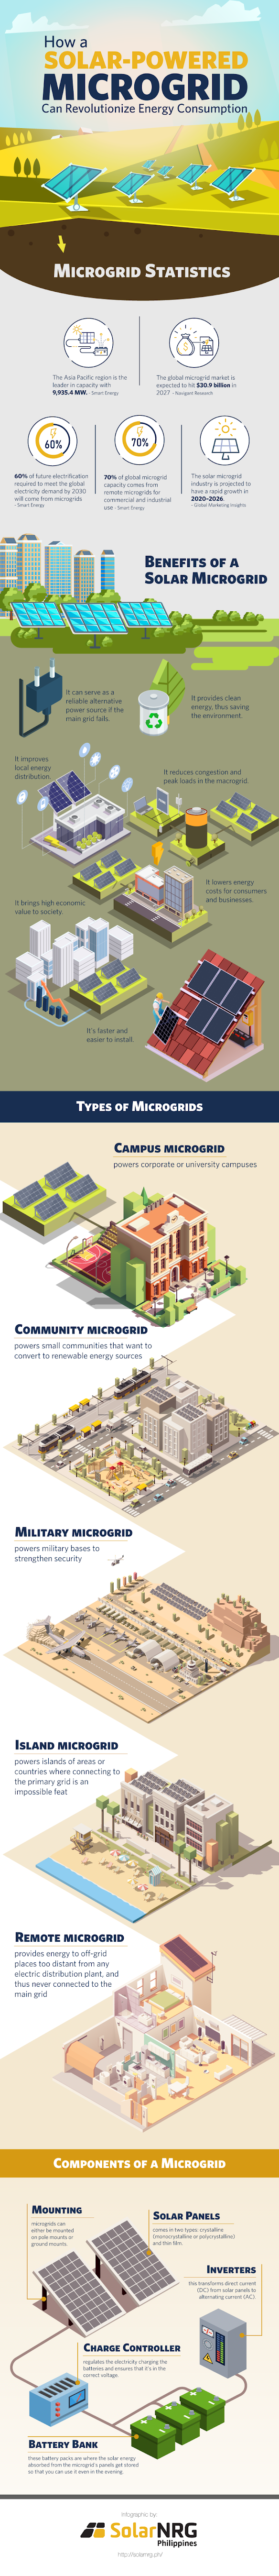 How a Solar-Powered Microgrid Can Revolutionize Energy Consumption #infographic #Solar Panel #Solar Energy #Powered Microgrid #Solar System #Energy Consumption #Future